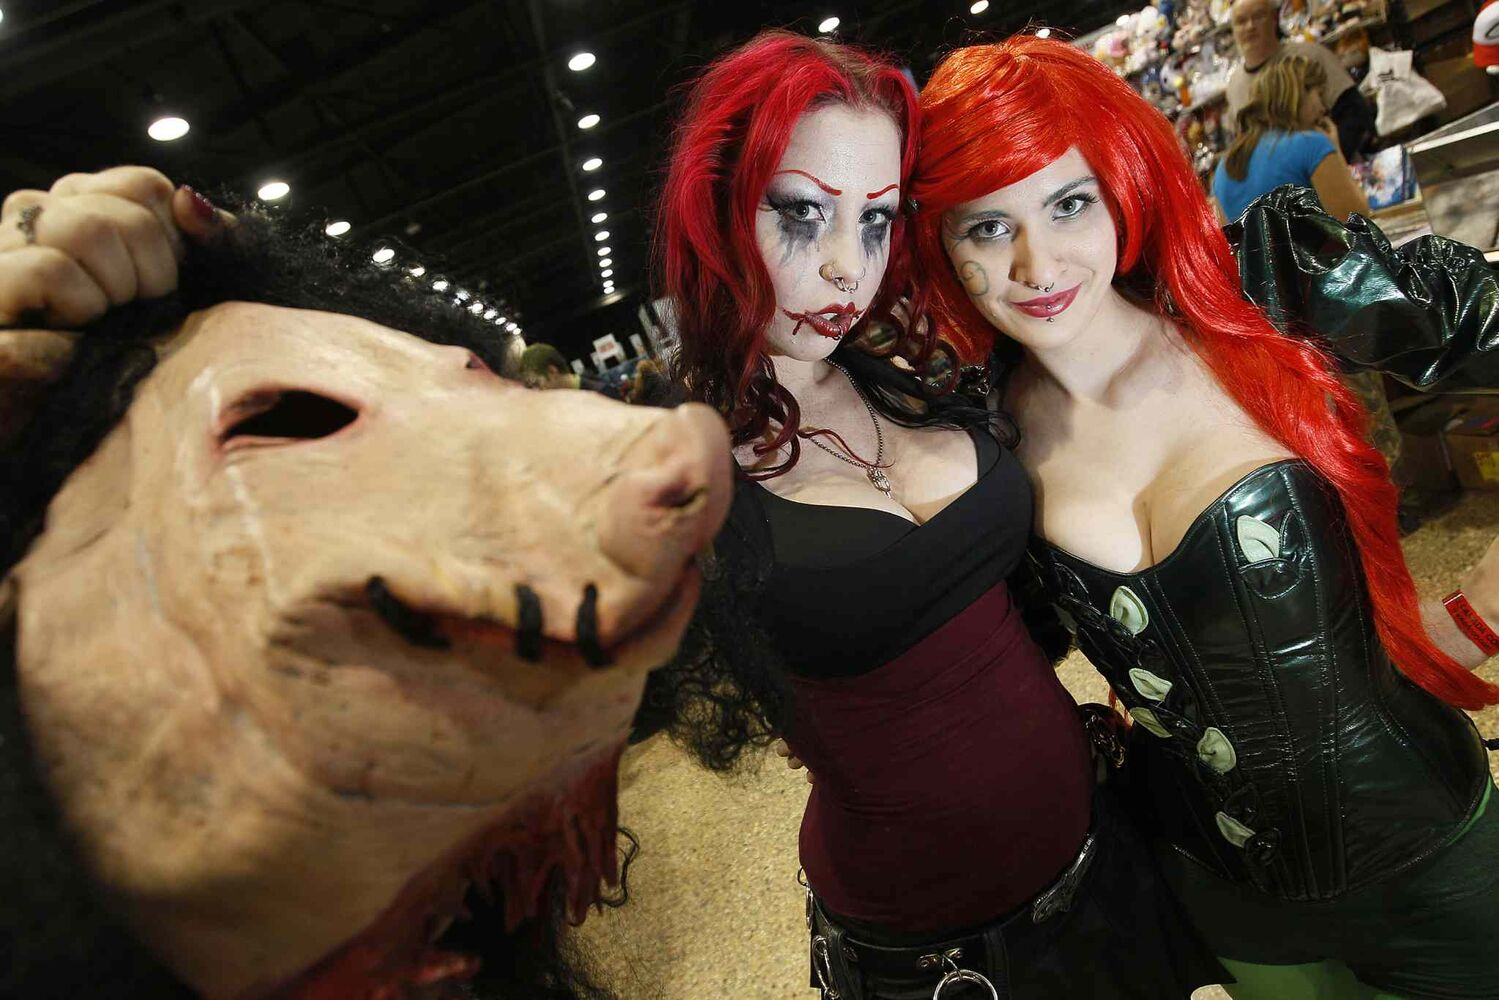 Brie Yaworski (right) dressed as Poison Ivy from the Batman franchise, while Lylia Chorosive dressed as Amanda Young, Jigsaw Killer's apprentice from the Saw franchise.